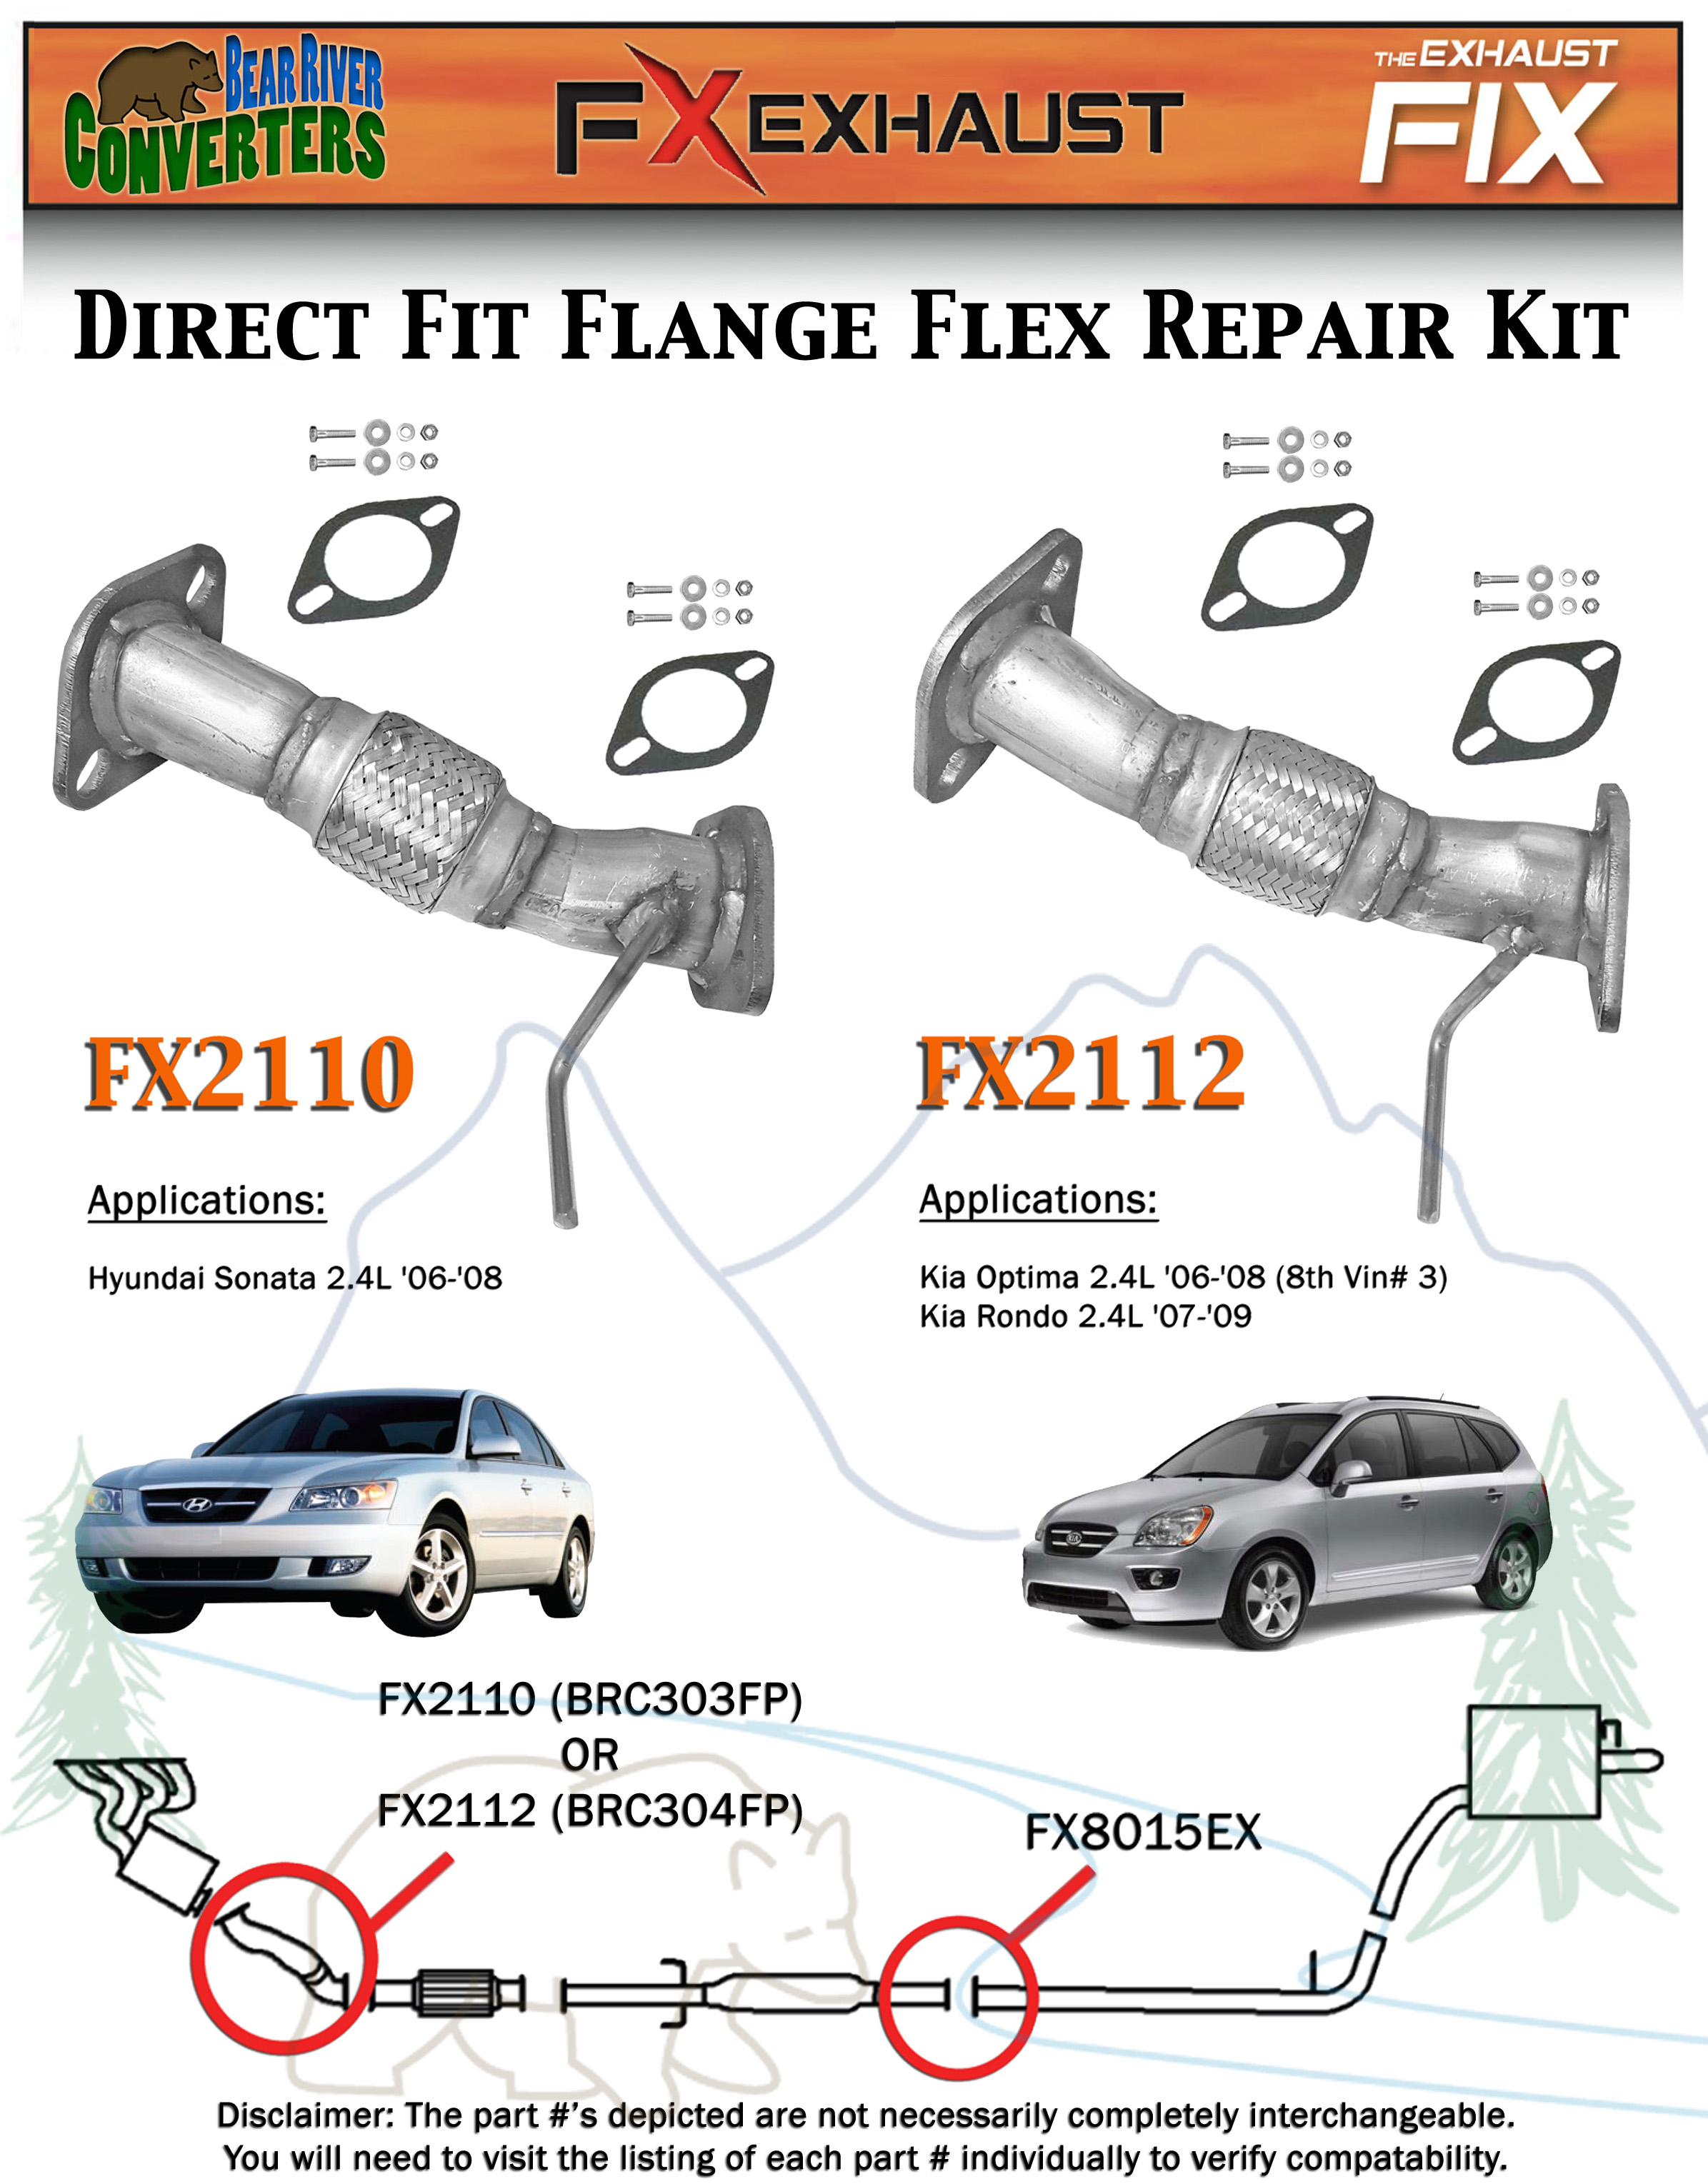 FX2110 Direct Fit Exhaust Flange Flex Front Pipe Repair